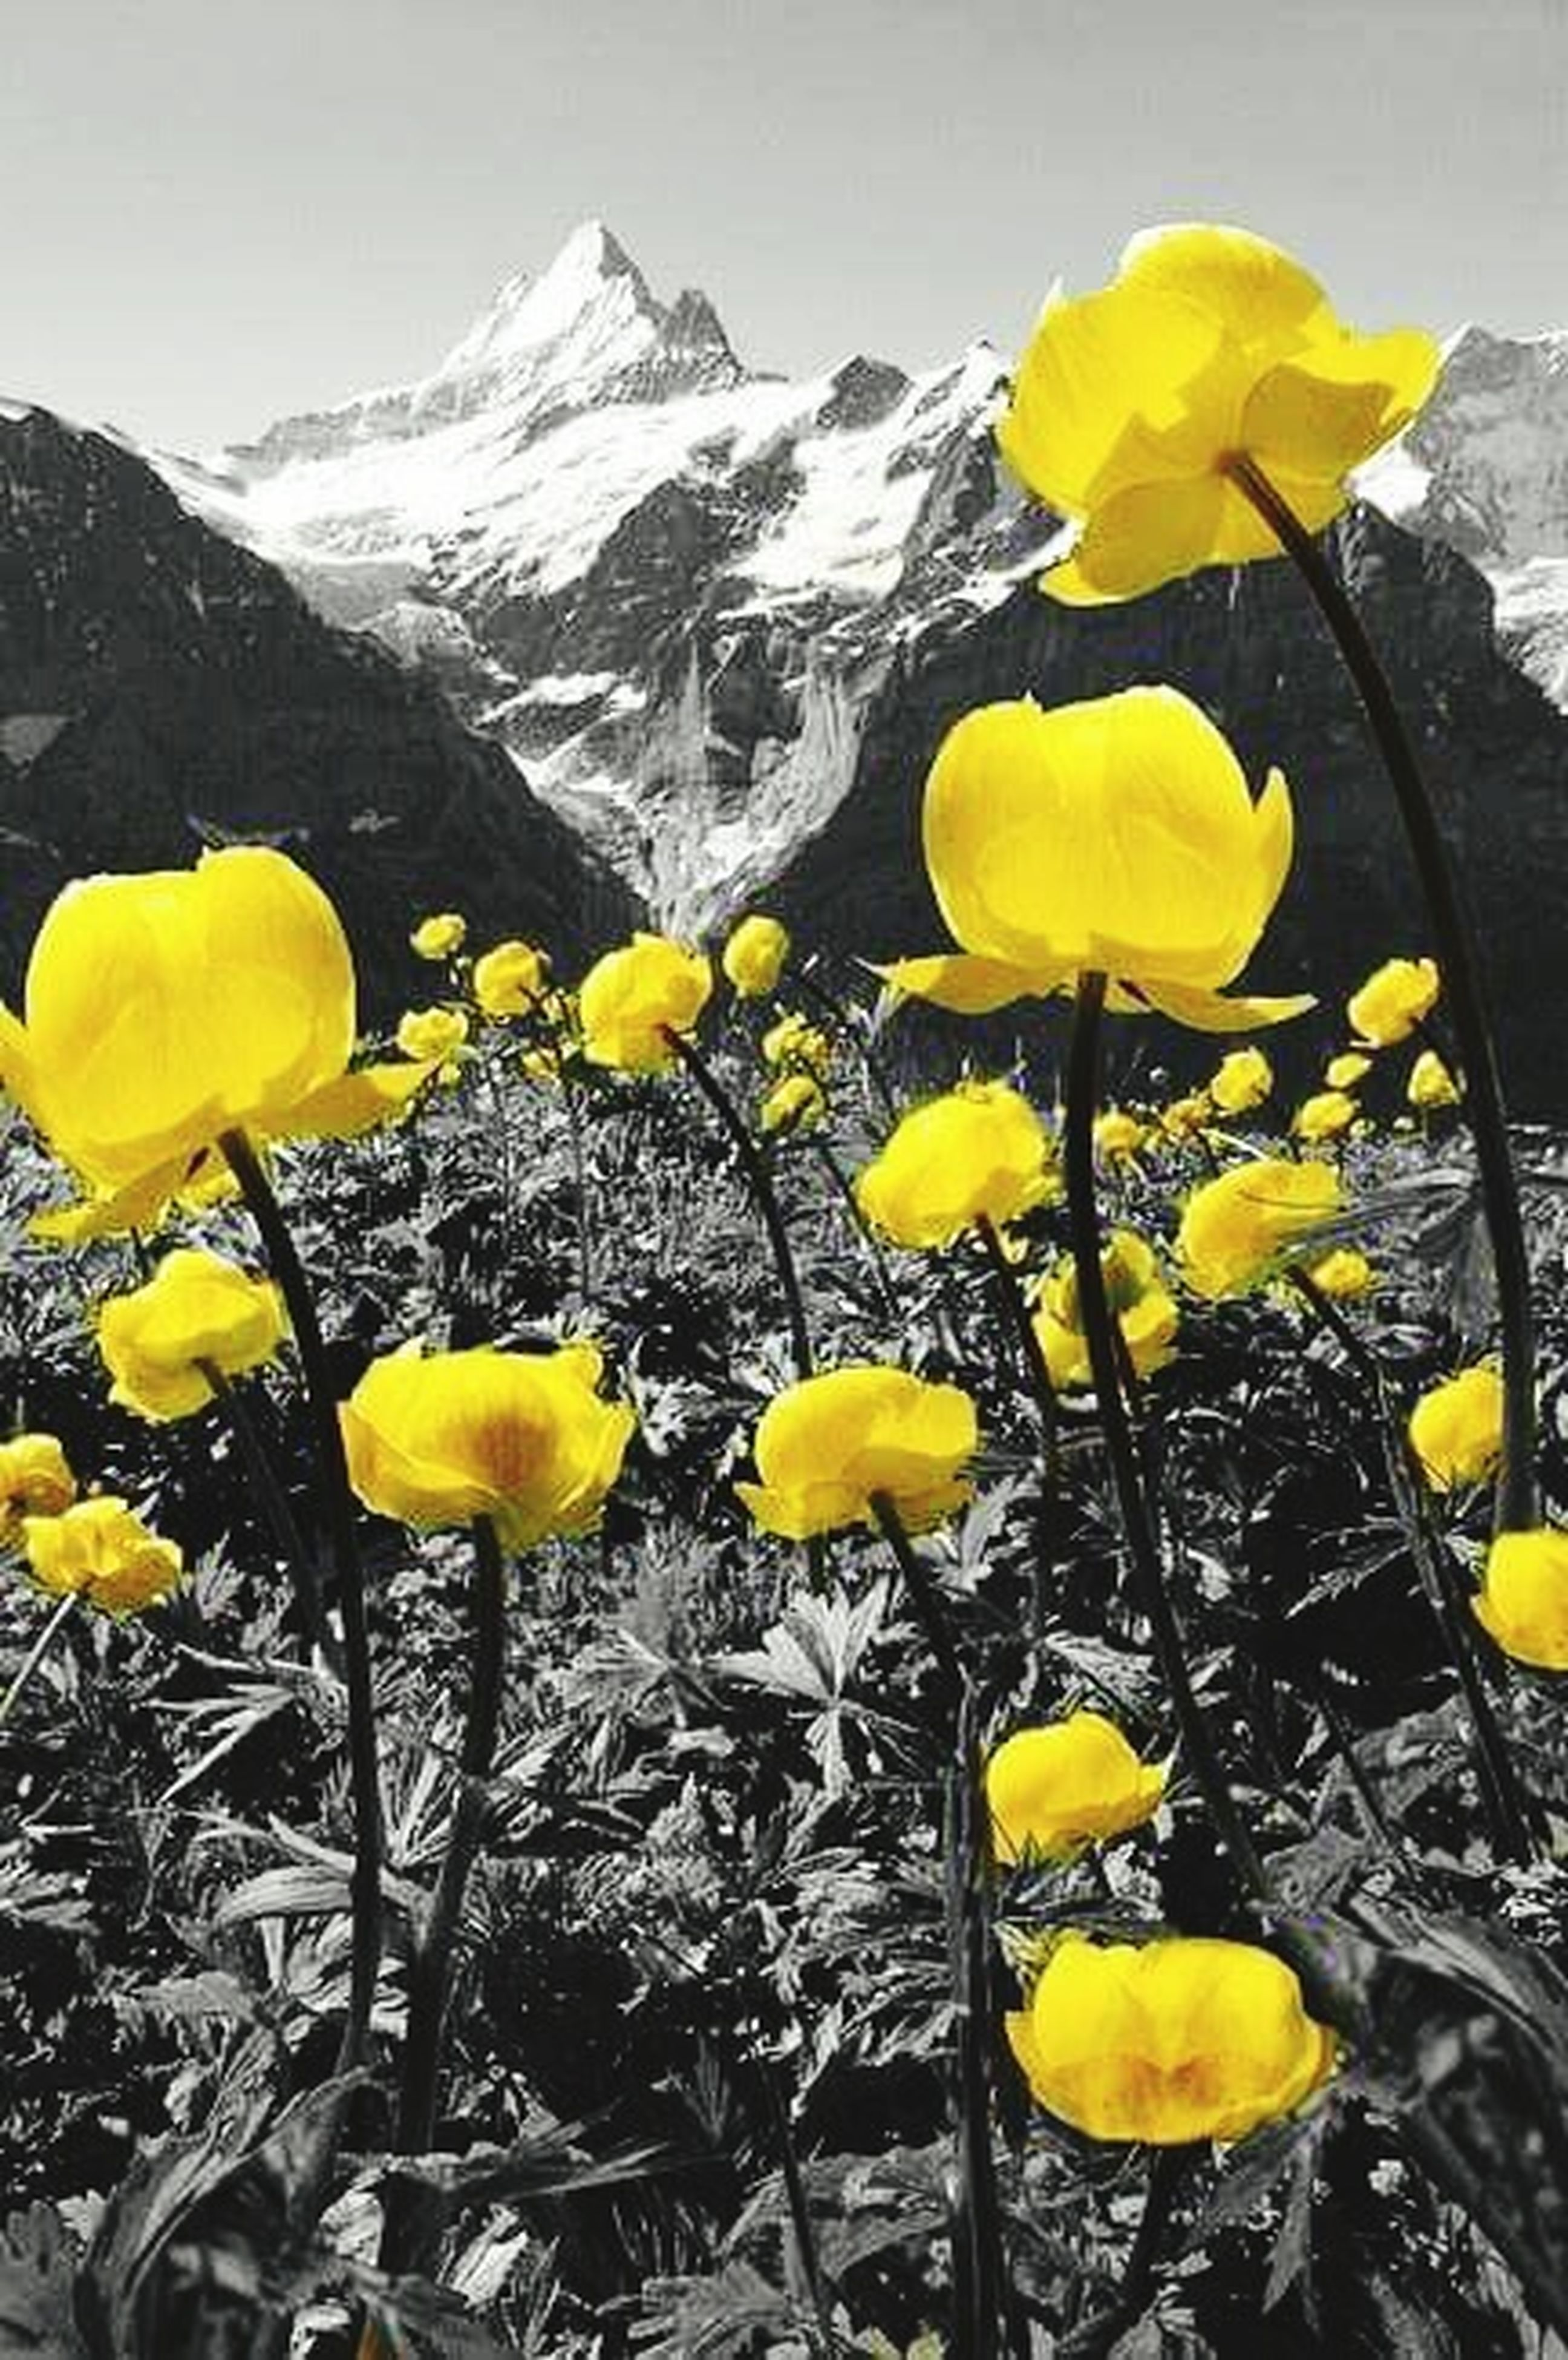 yellow, flower, mountain, beauty in nature, season, nature, fragility, plant, growth, tranquility, freshness, field, mountain range, petal, tranquil scene, high angle view, landscape, stem, winter, day